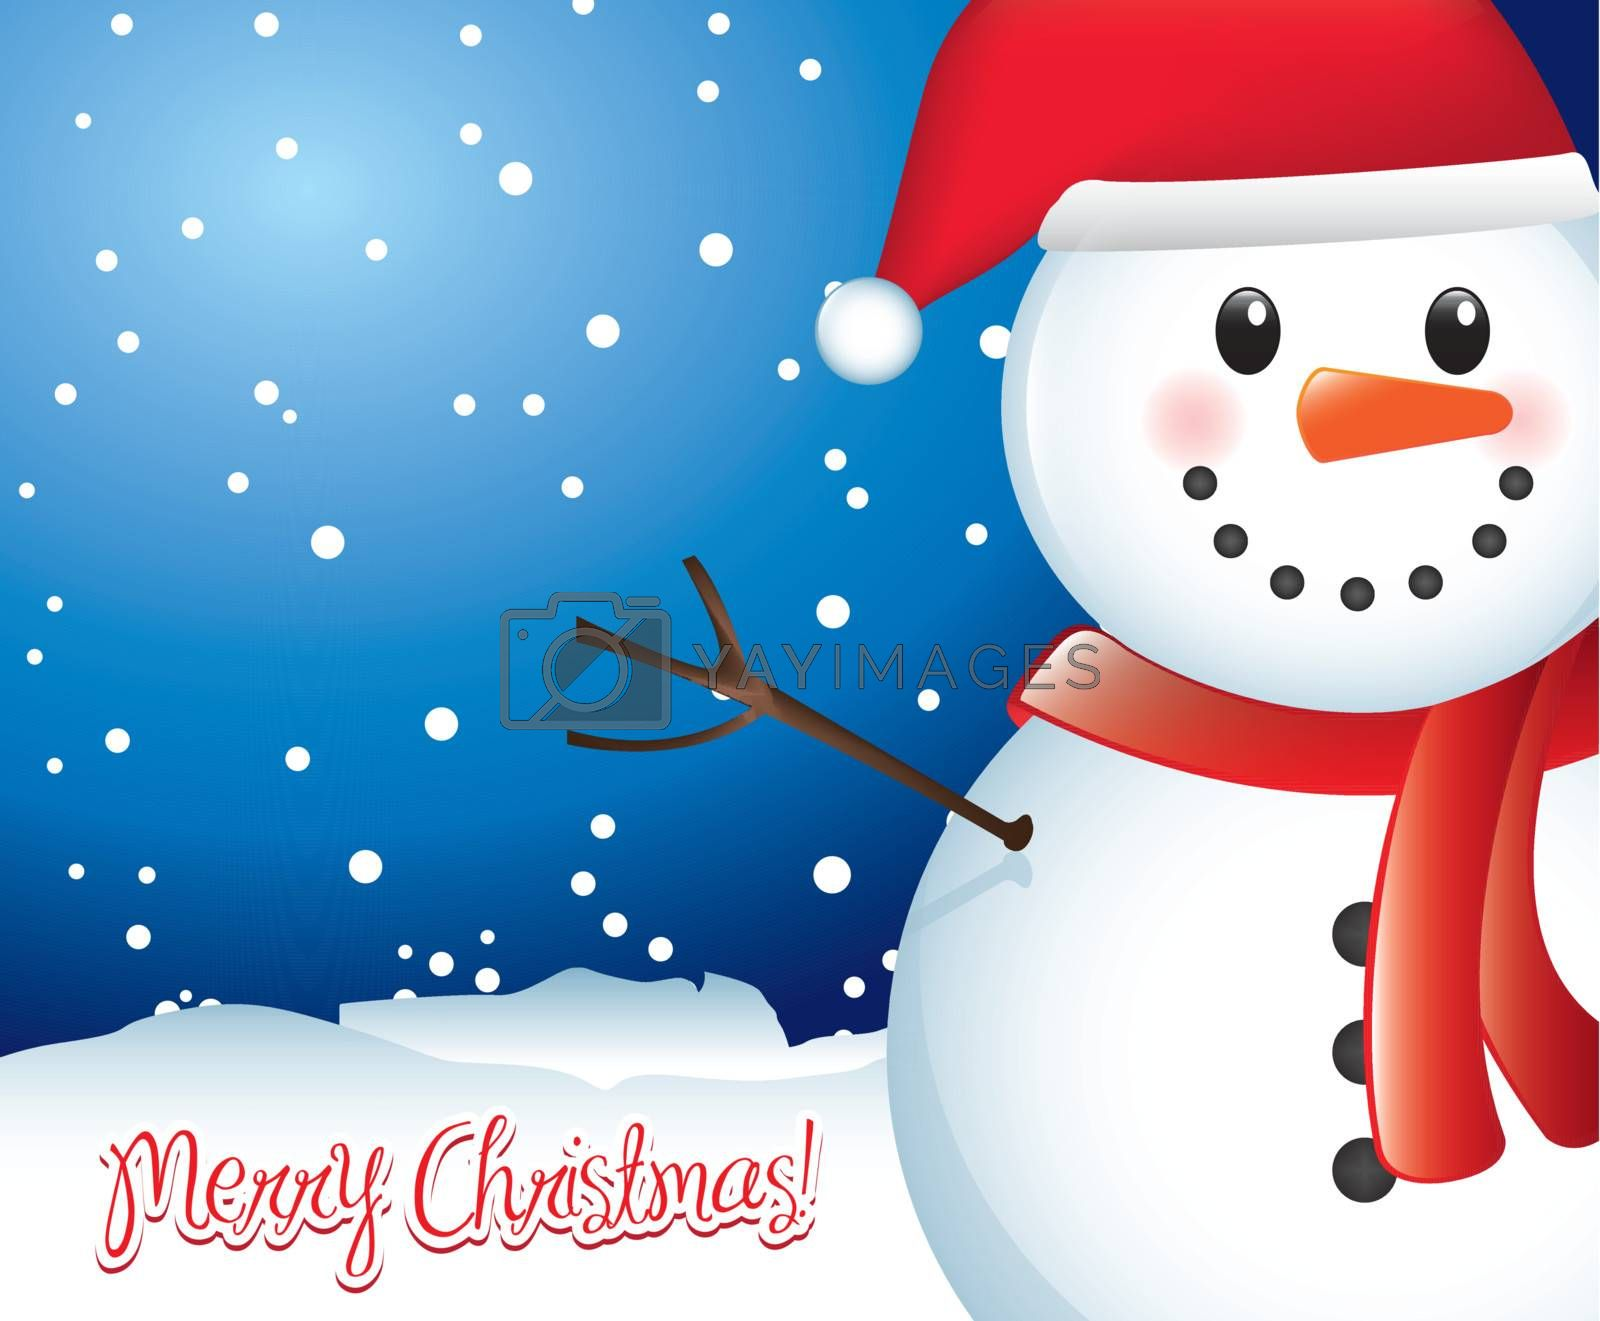 Merry christmas card with snowman and snow Vector illustration